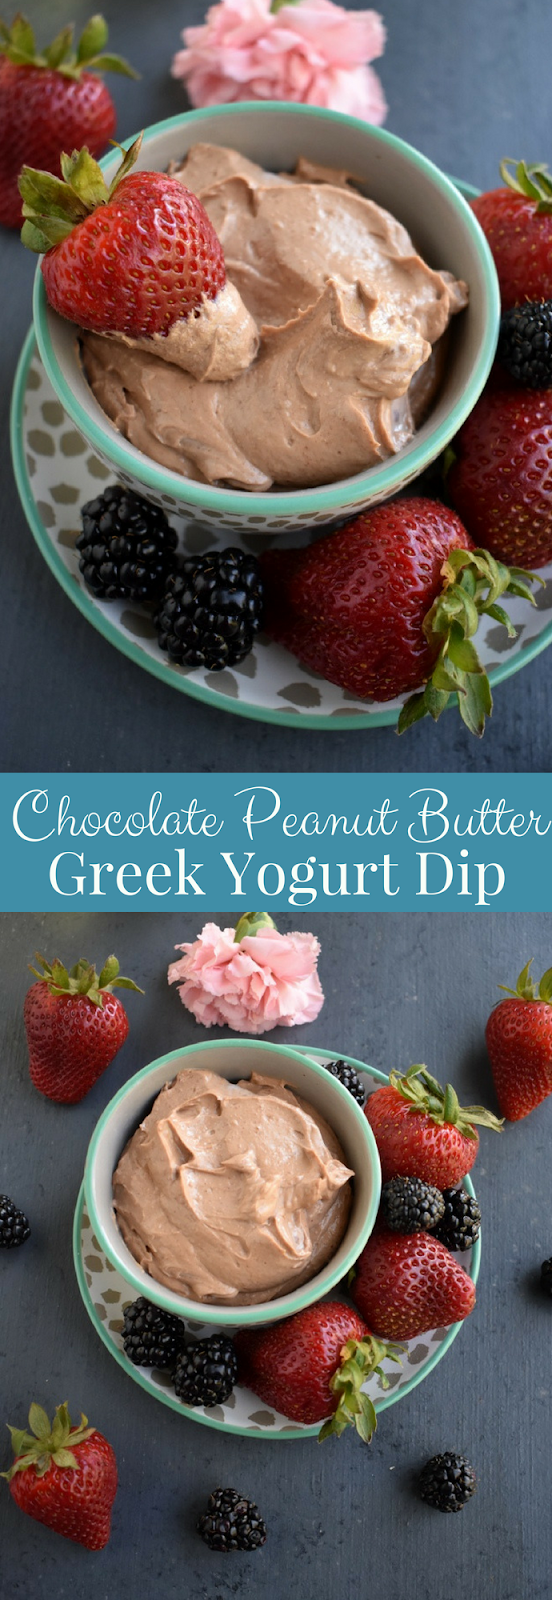 Chocolate Peanut Butter Greek Yogurt Dip is super easy to make with 4 ingredients! Pair with fruit, pretzels and more for a healthier delicious snack. www.nutritionistreviews.com